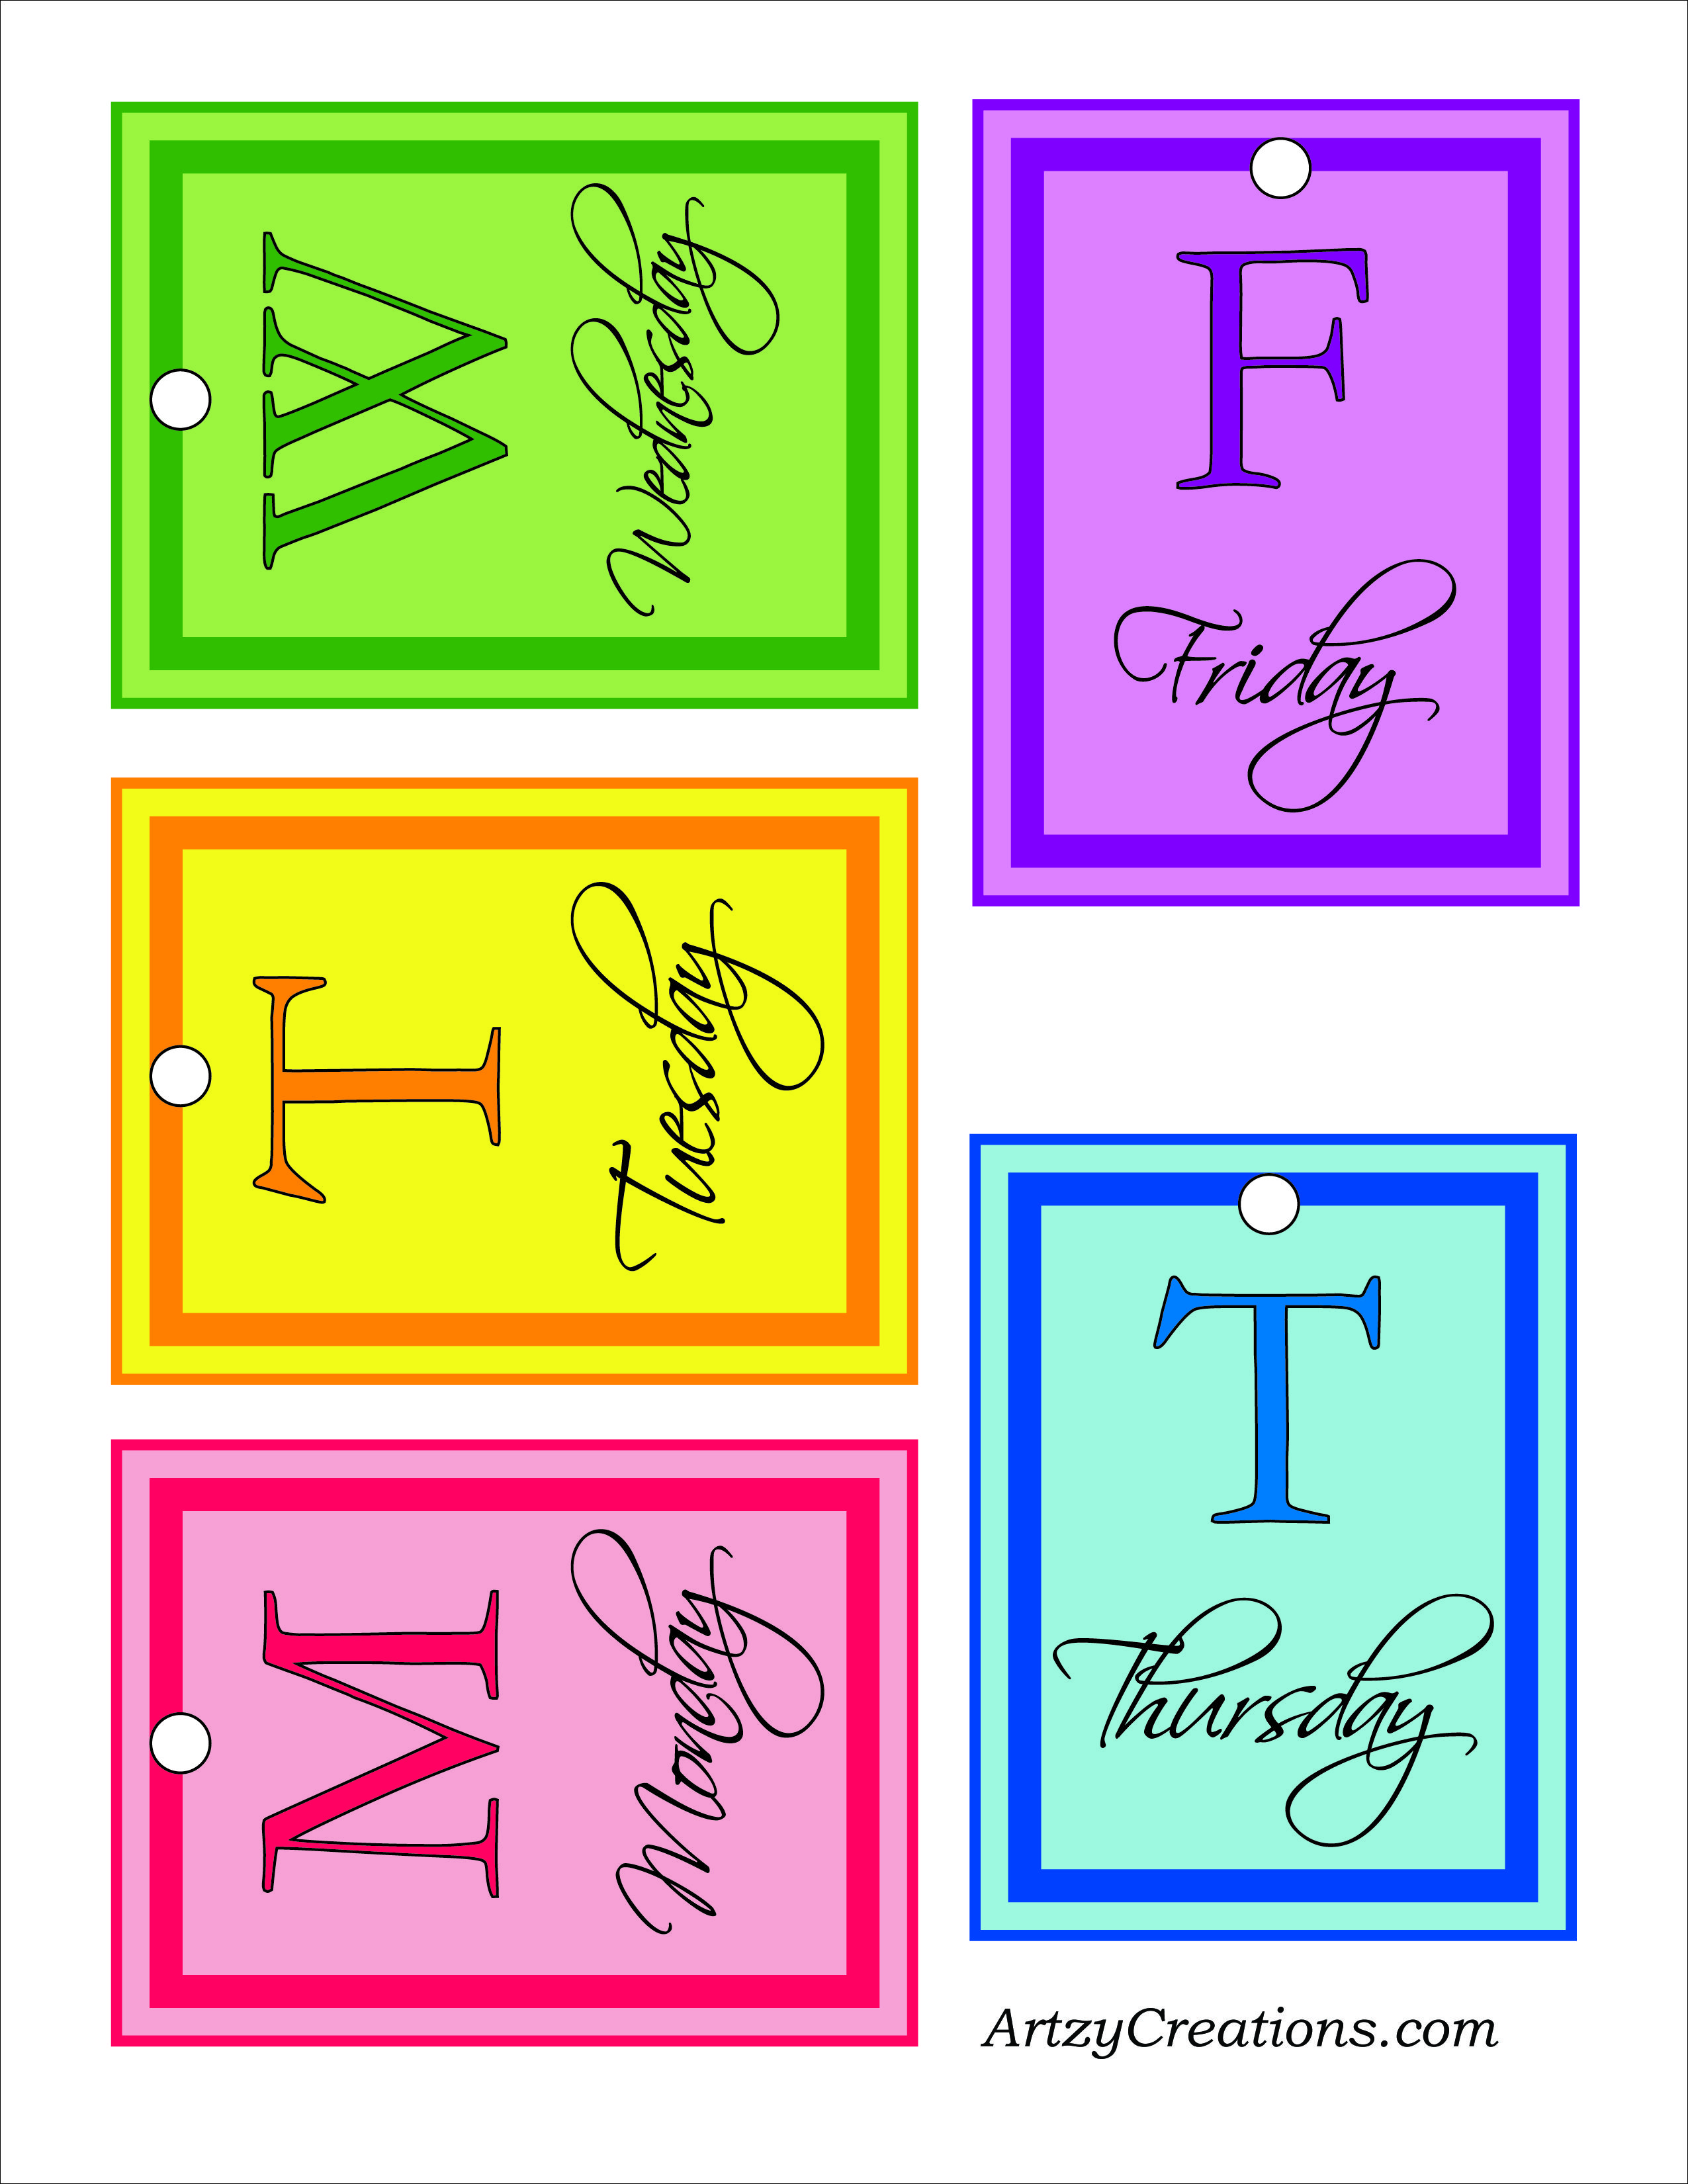 Cute Labels To Help Coordinate Outfits For The Week Pick Out Your Clothes On Sunday For The